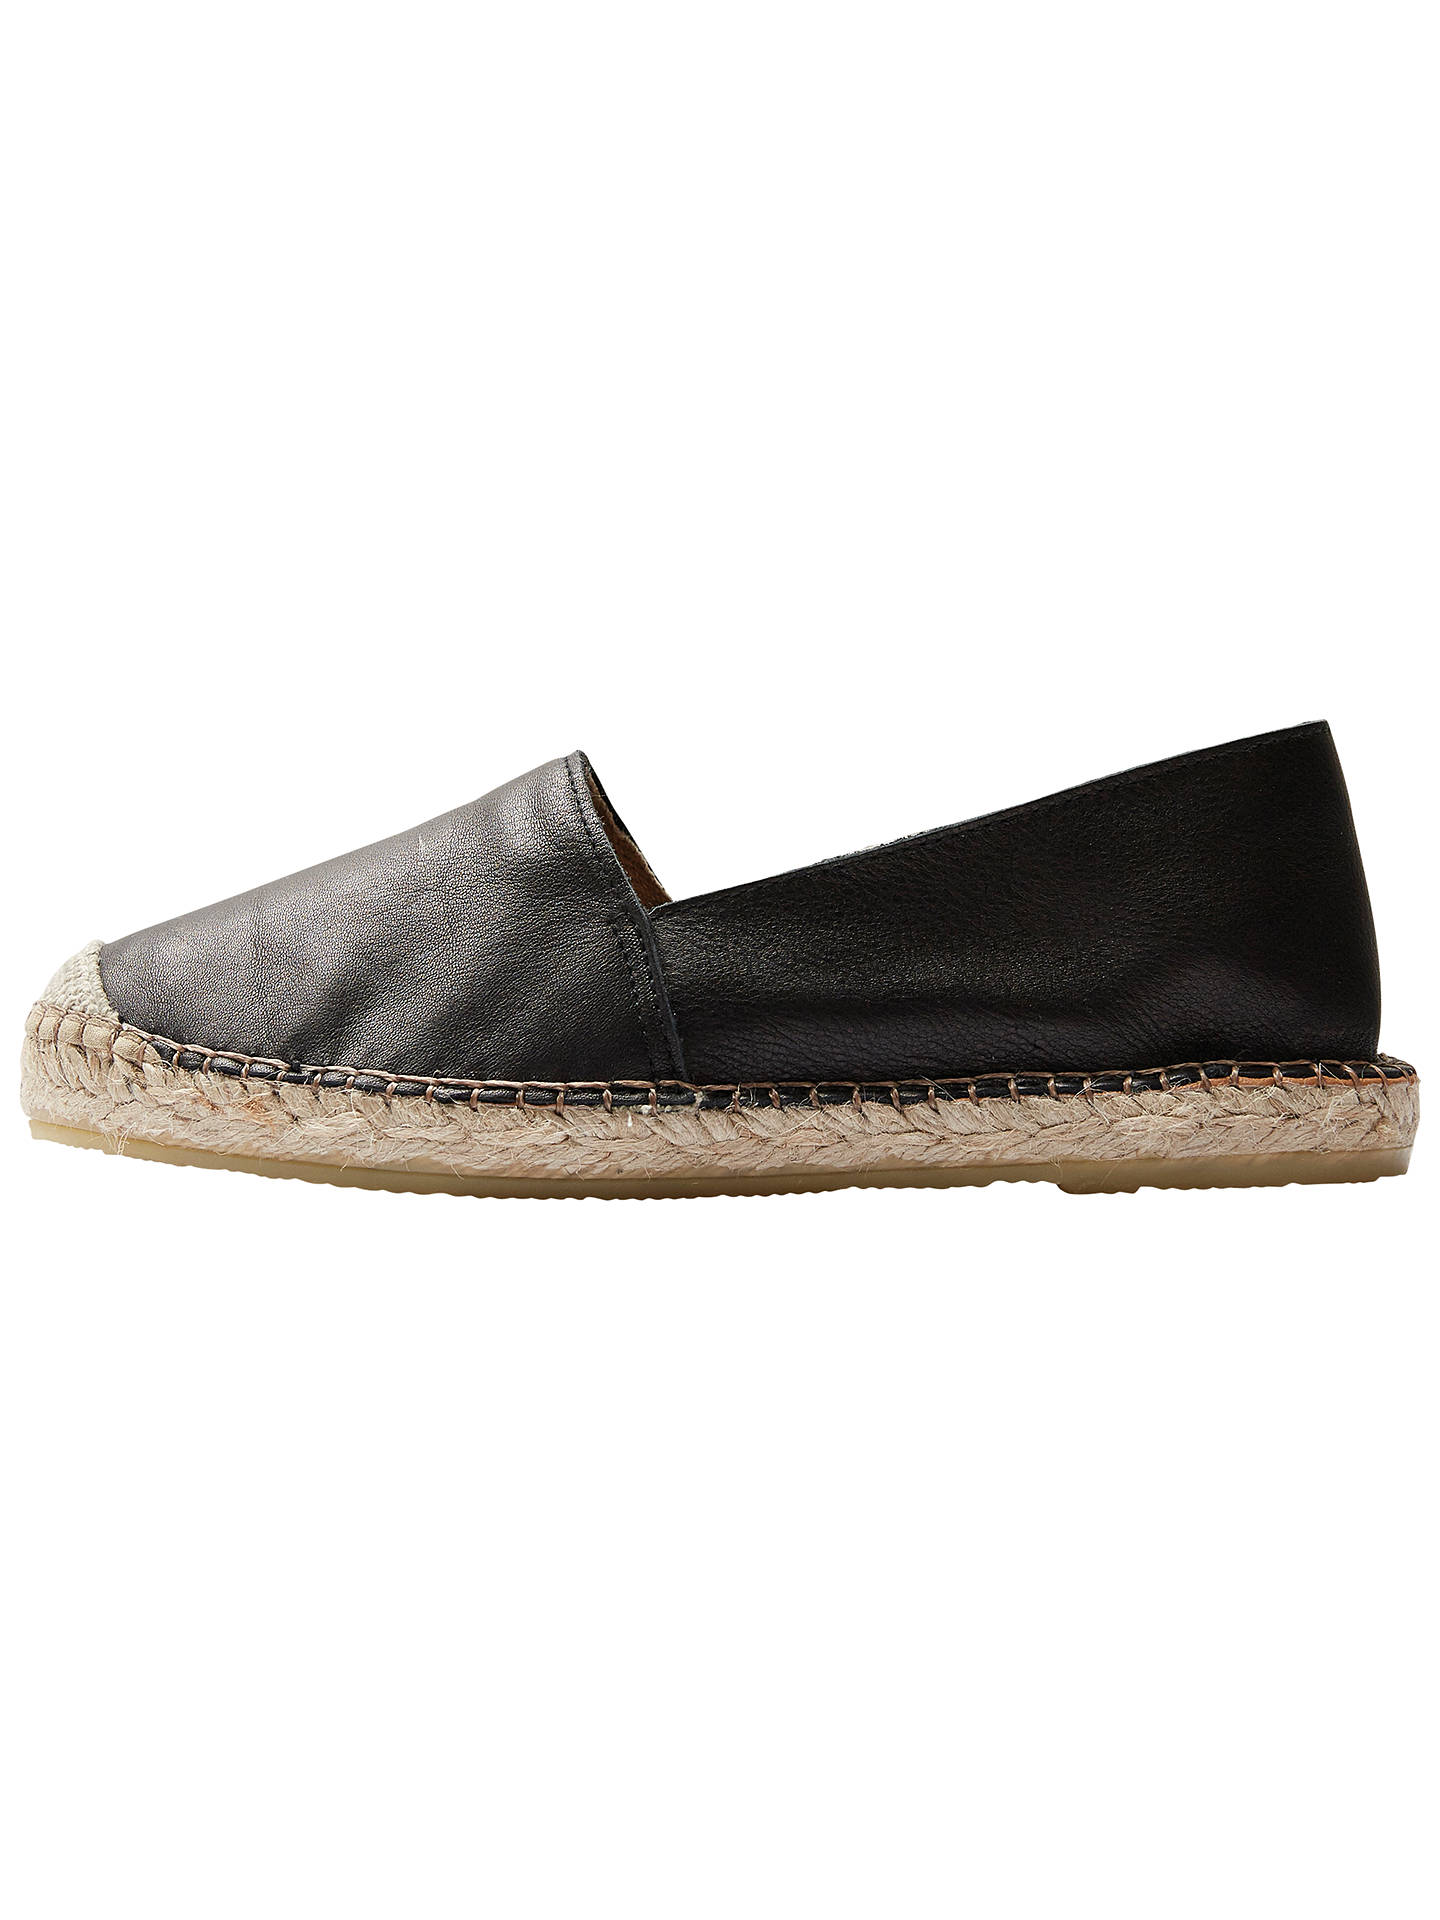 e4960327dfc8 Selected Femme Marley Leather Slip On Espadrilles at John Lewis ...